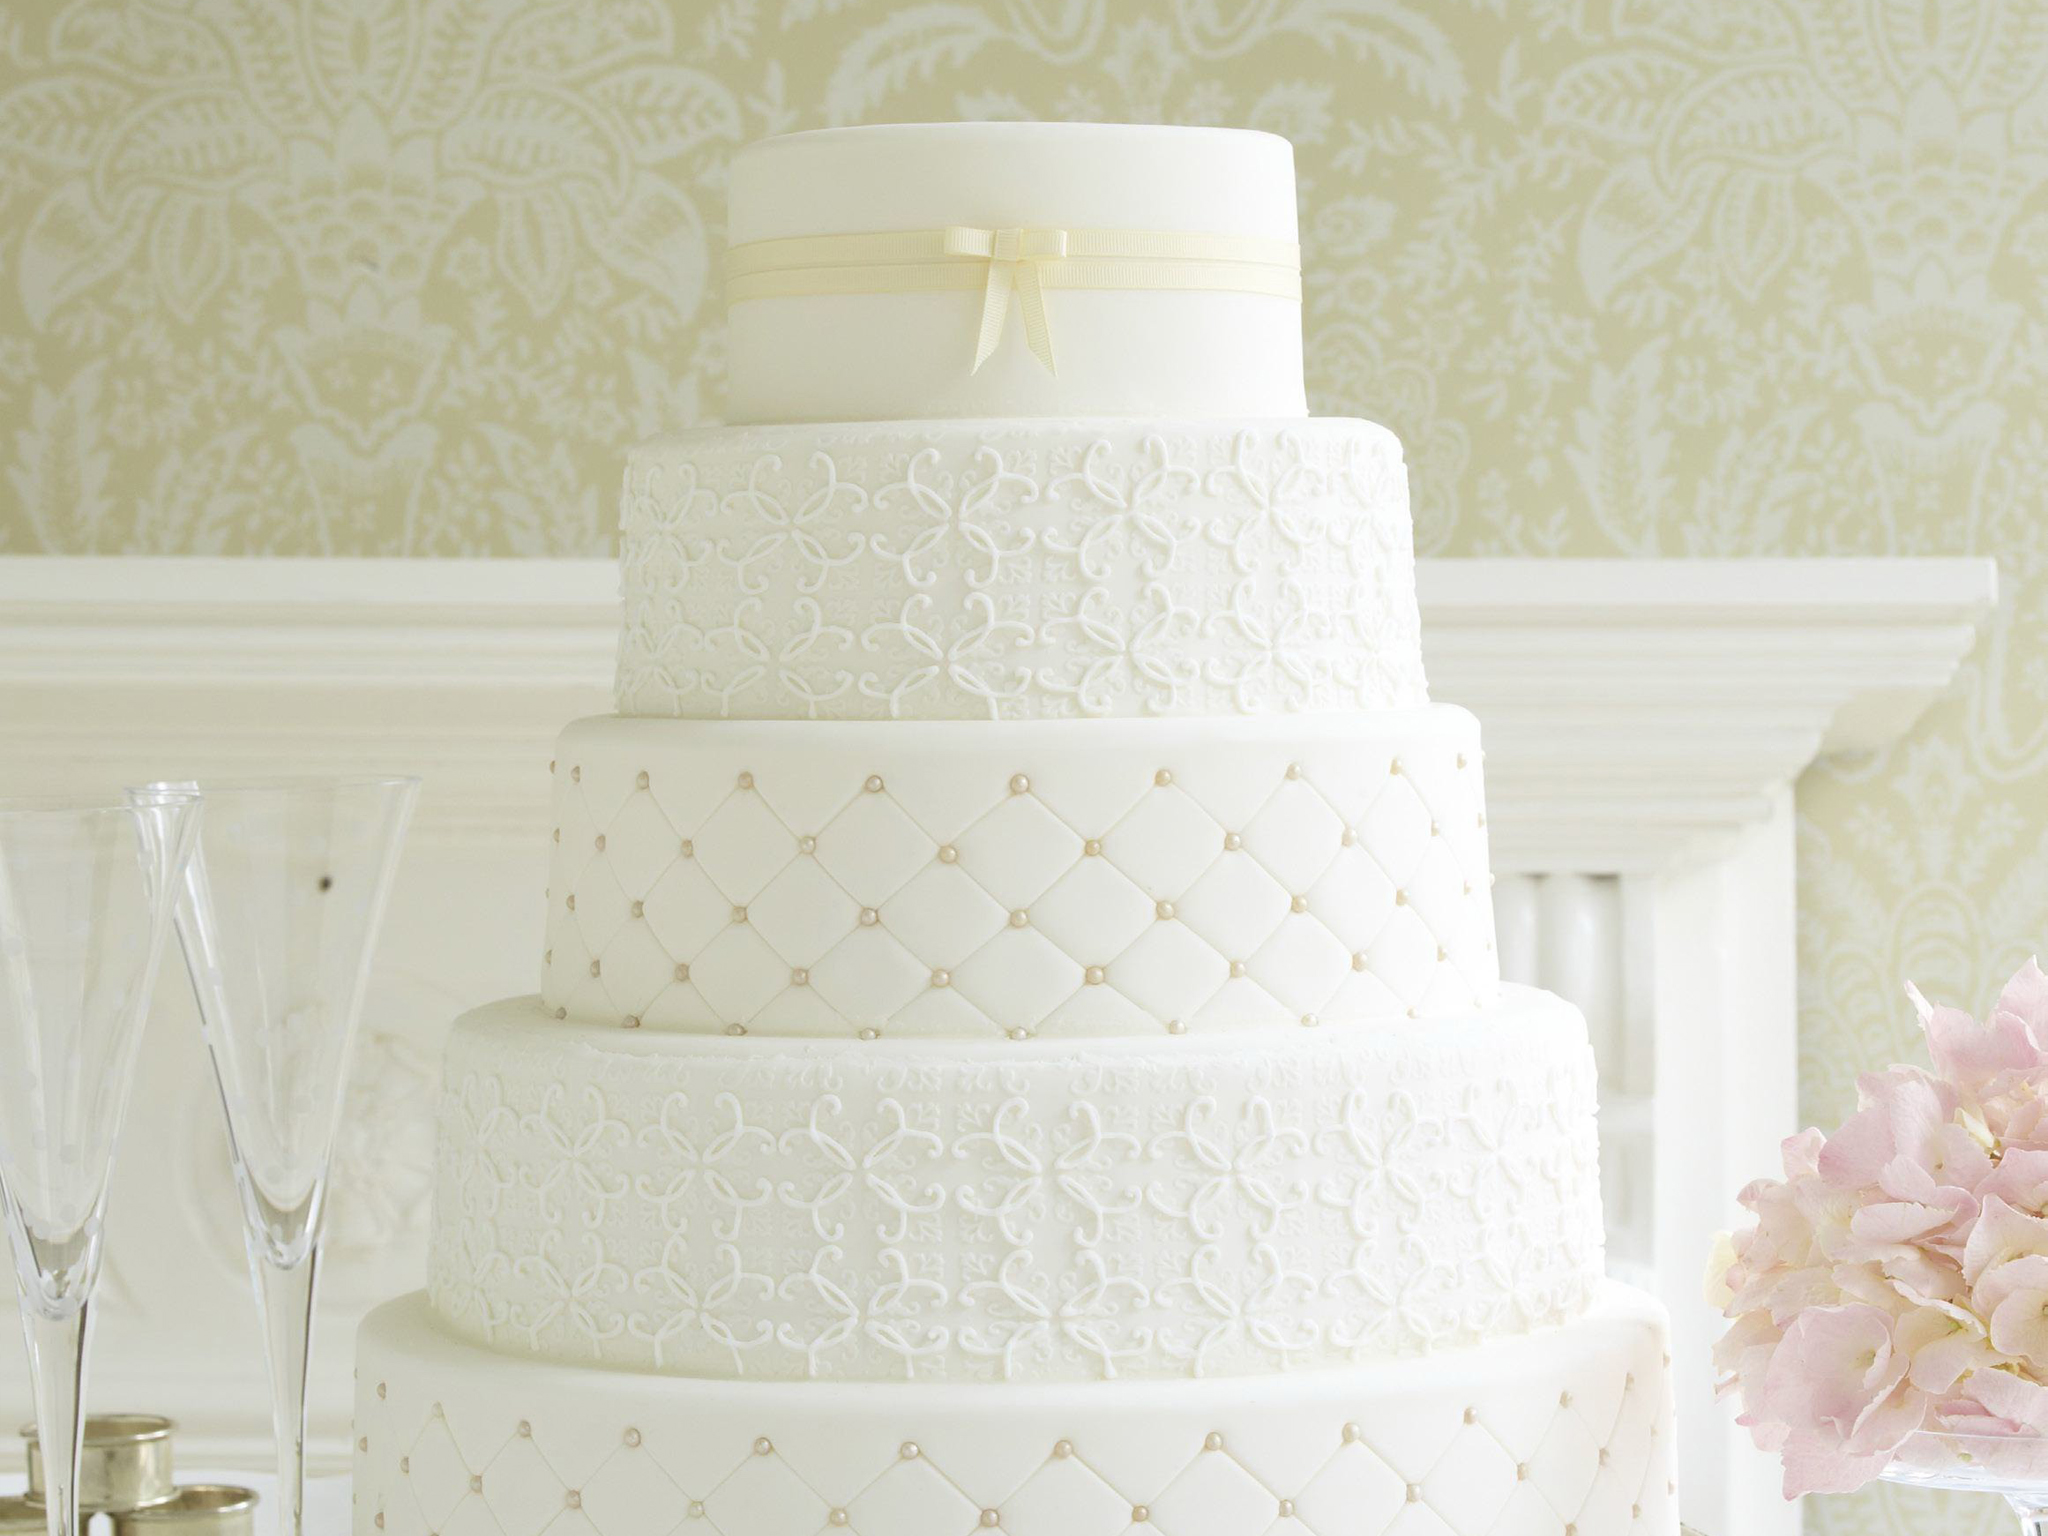 Traditional wedding cake recipe | Food To Love